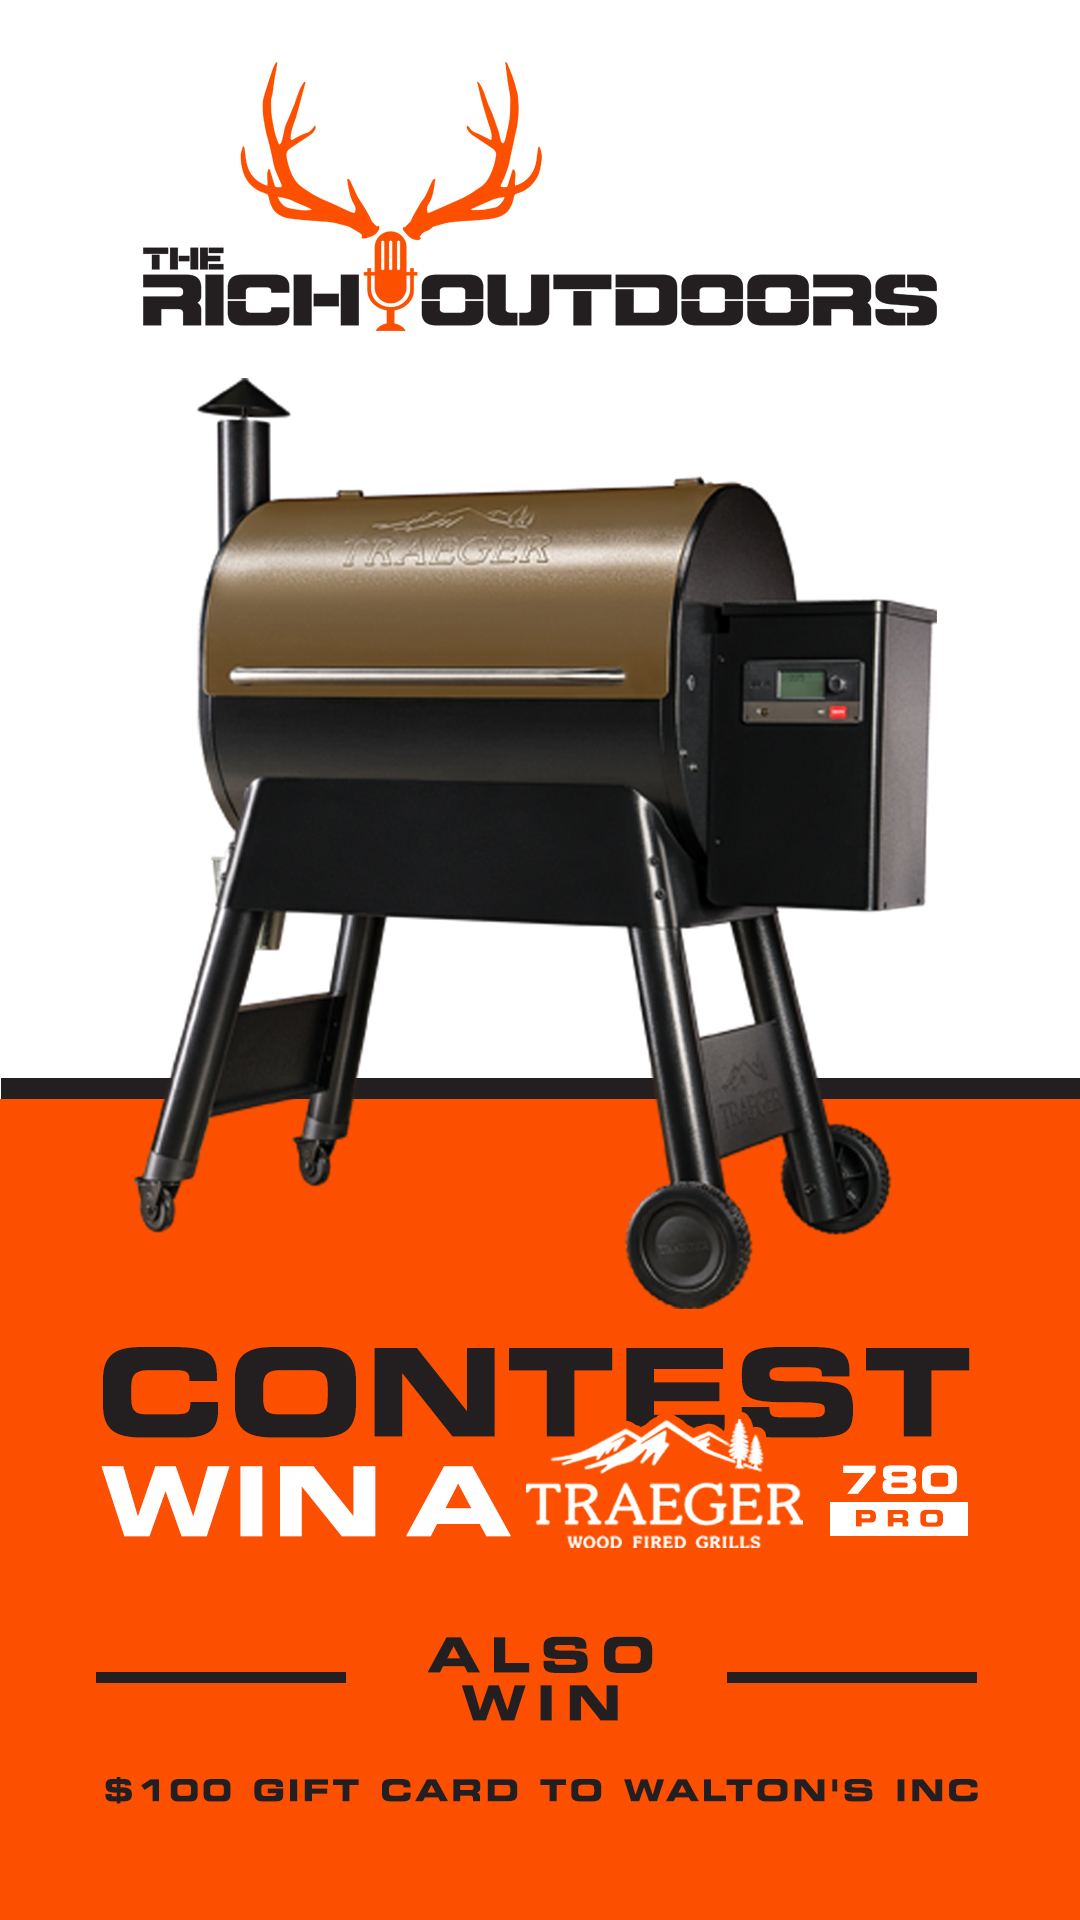 Rich Outdoors traeger giveaway Instagram Story Ad Design